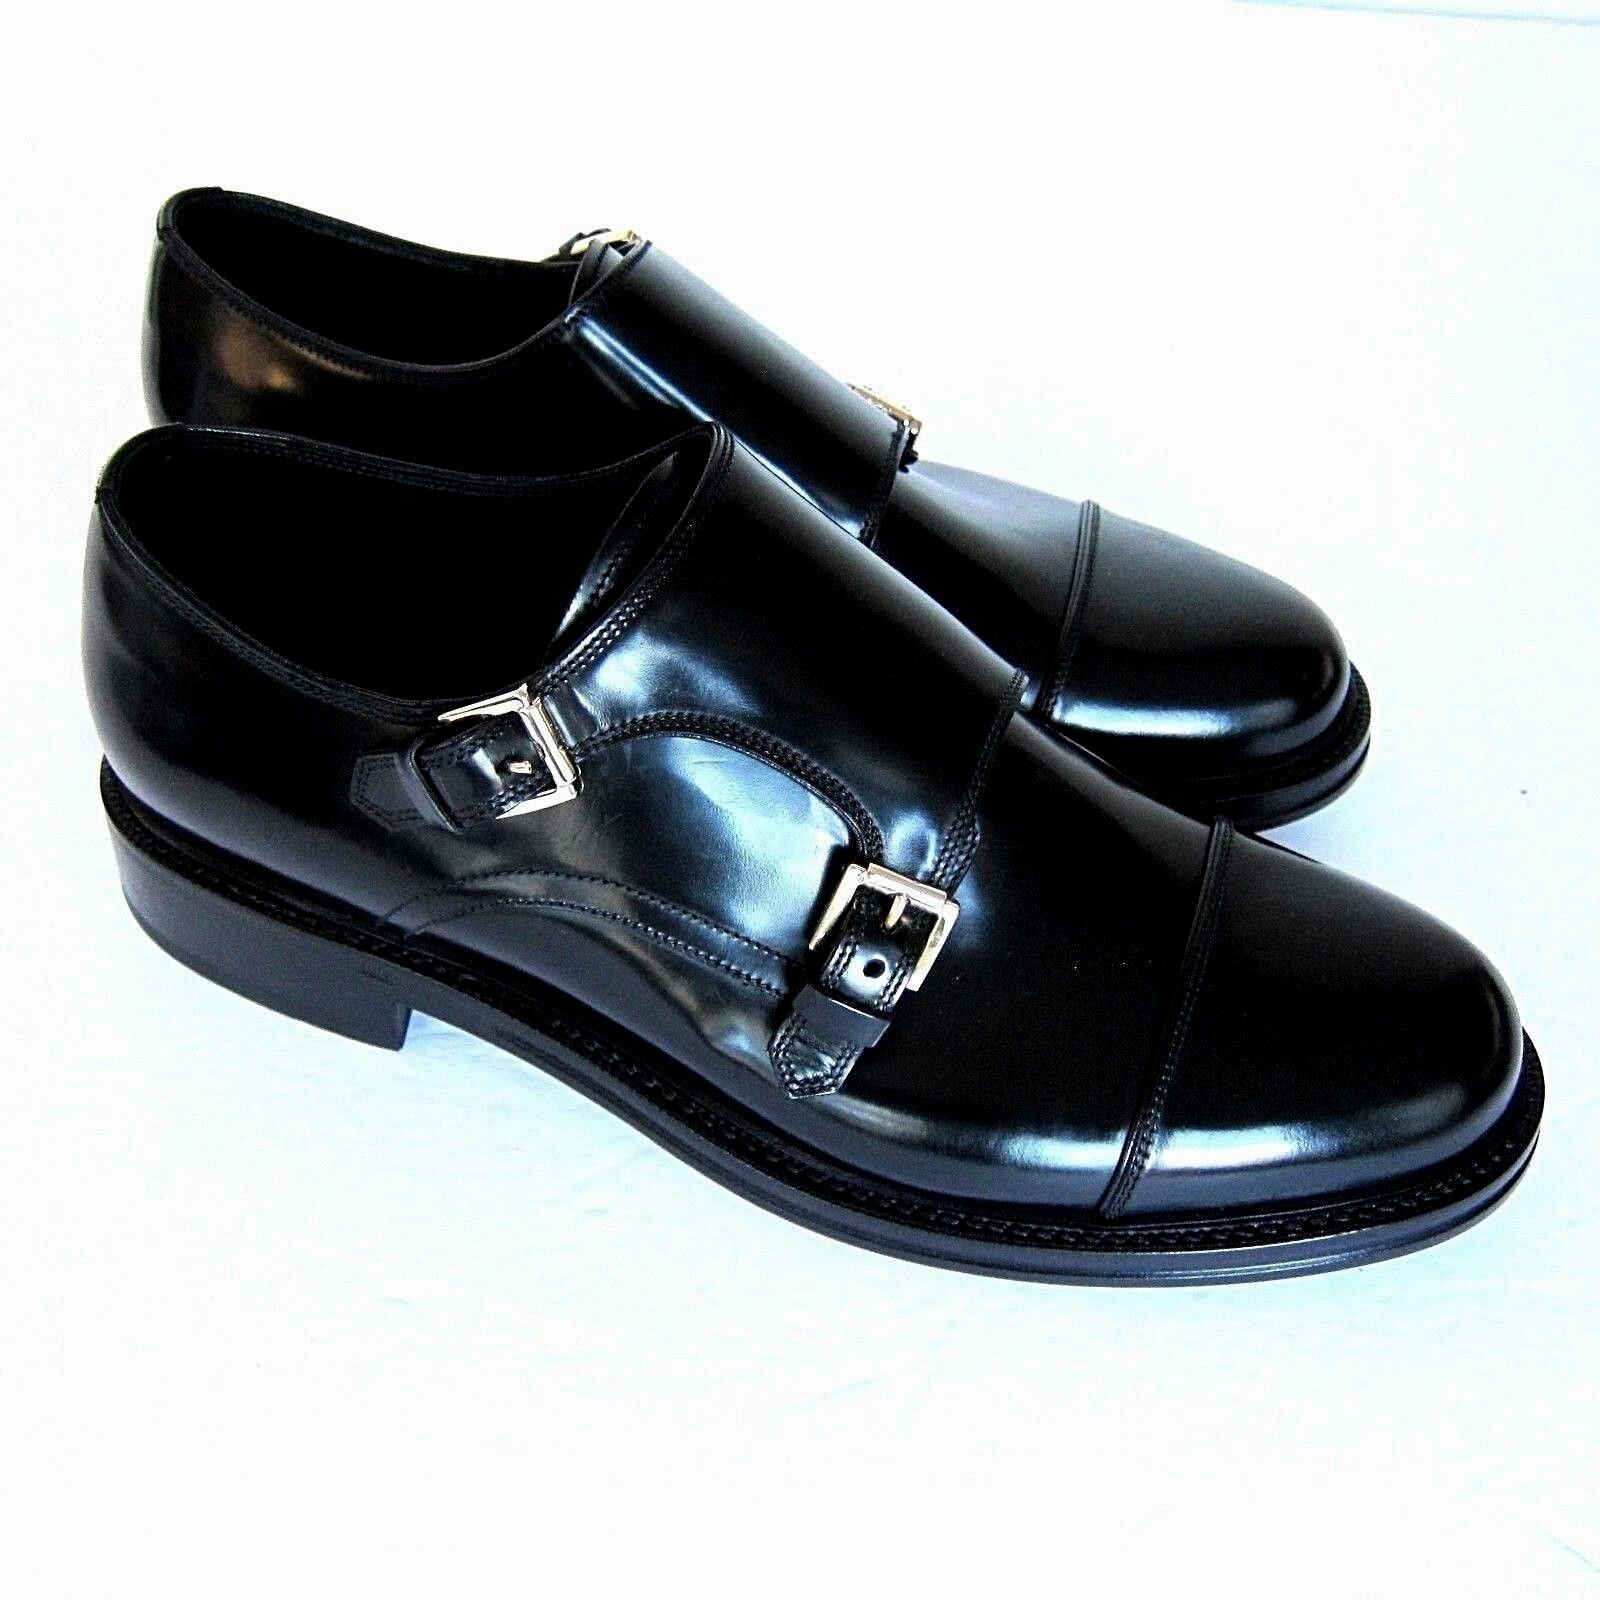 J-3060252 New Brioni Black Double Monk Buckle Dress shoes Size US 10 Marked 9